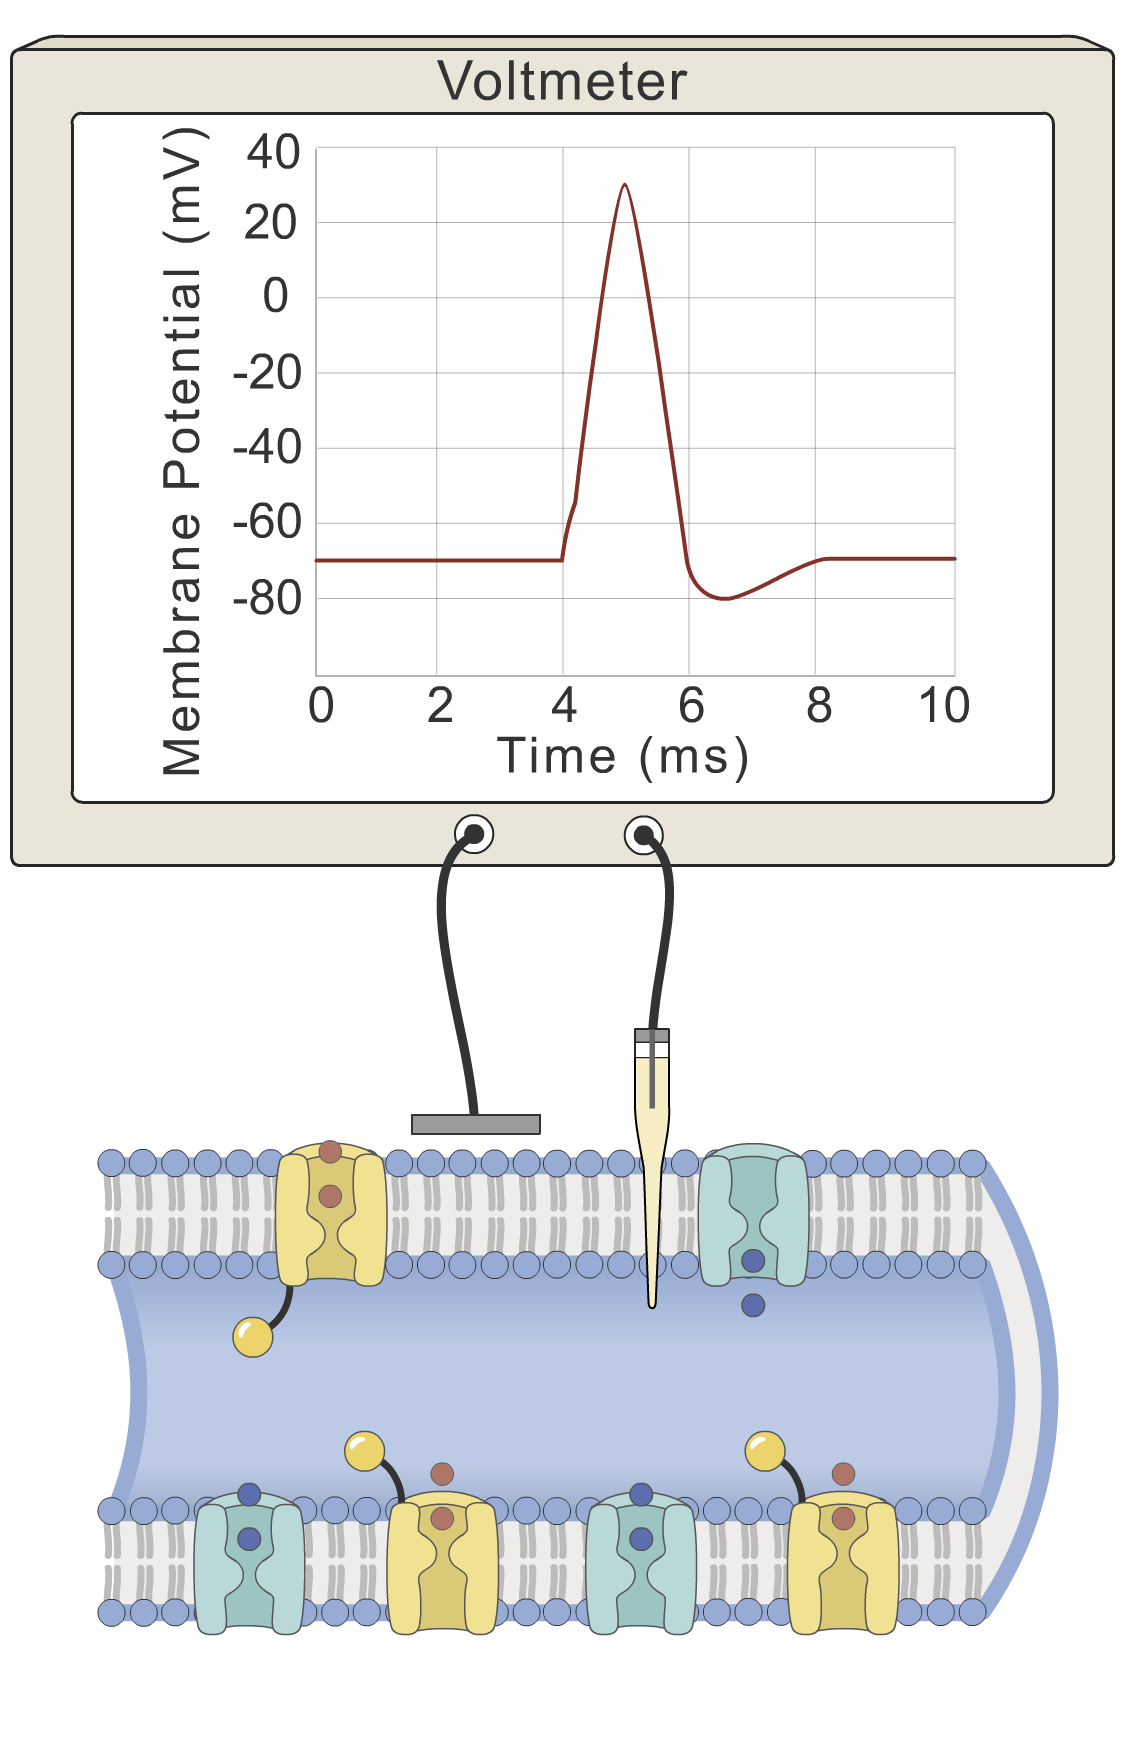 Action potential: return to resting potential